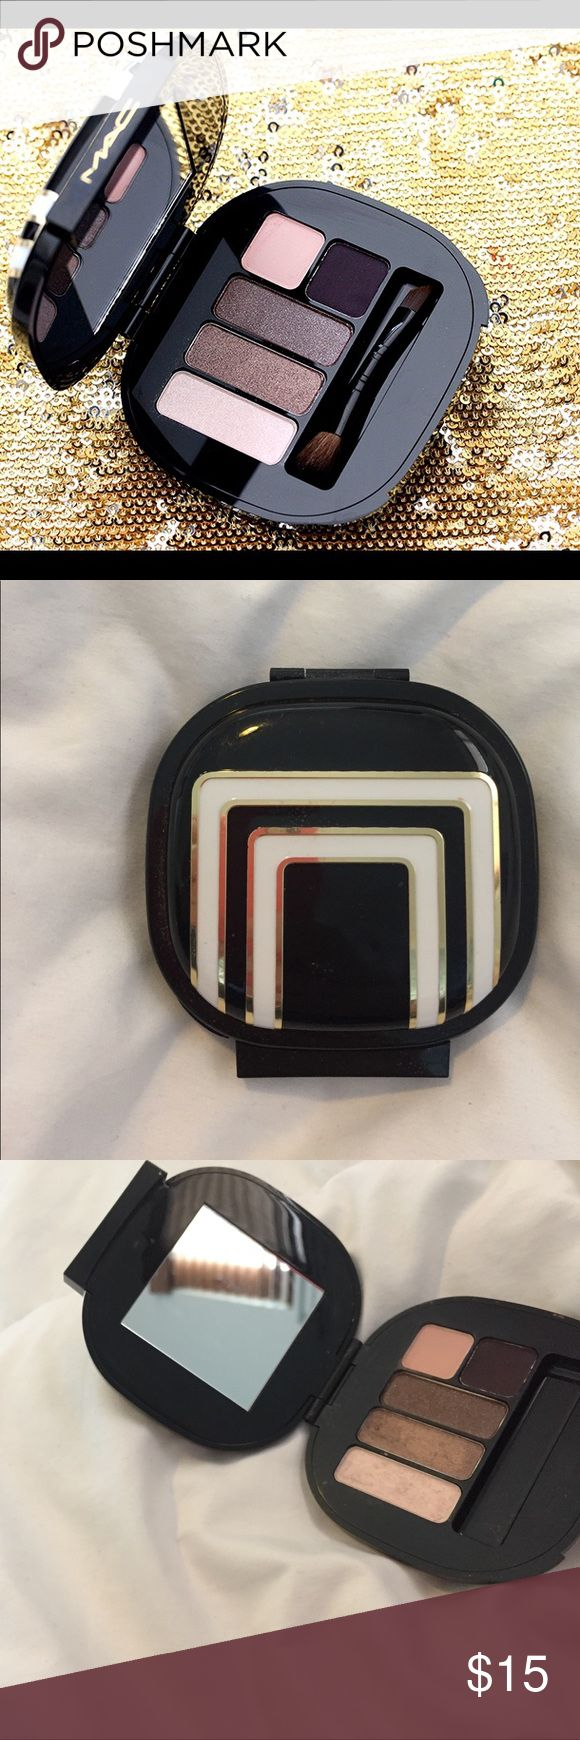 Stroke of Midnight Cool Shades MAC palet 100% authentic. Used once, beautiful colors. All makeup can be bundled 2+ 30% 3+ 50% MAC Cosmetics Makeup Eyeshadow